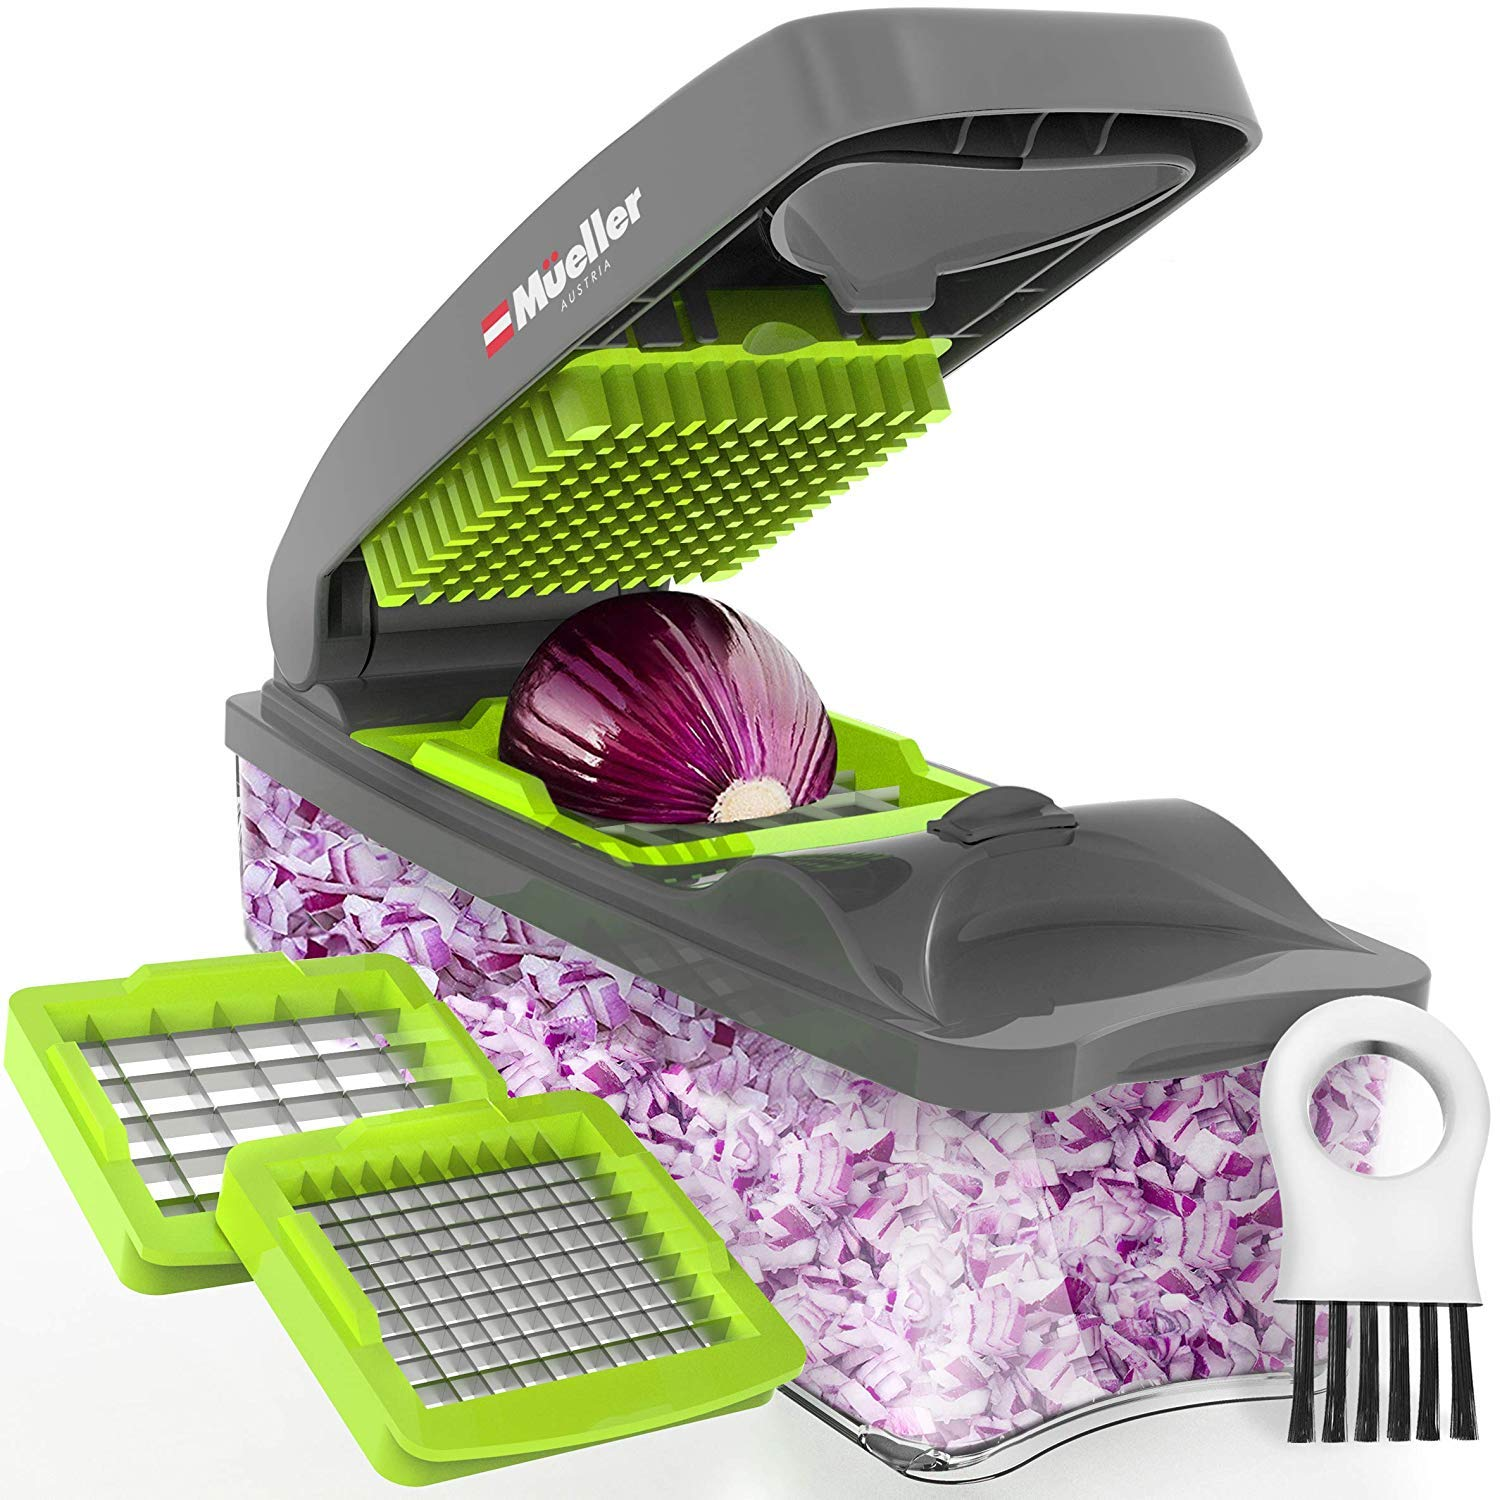 Review of Mueller Onion Chopper Pro Vegetable Chopper - Strongest